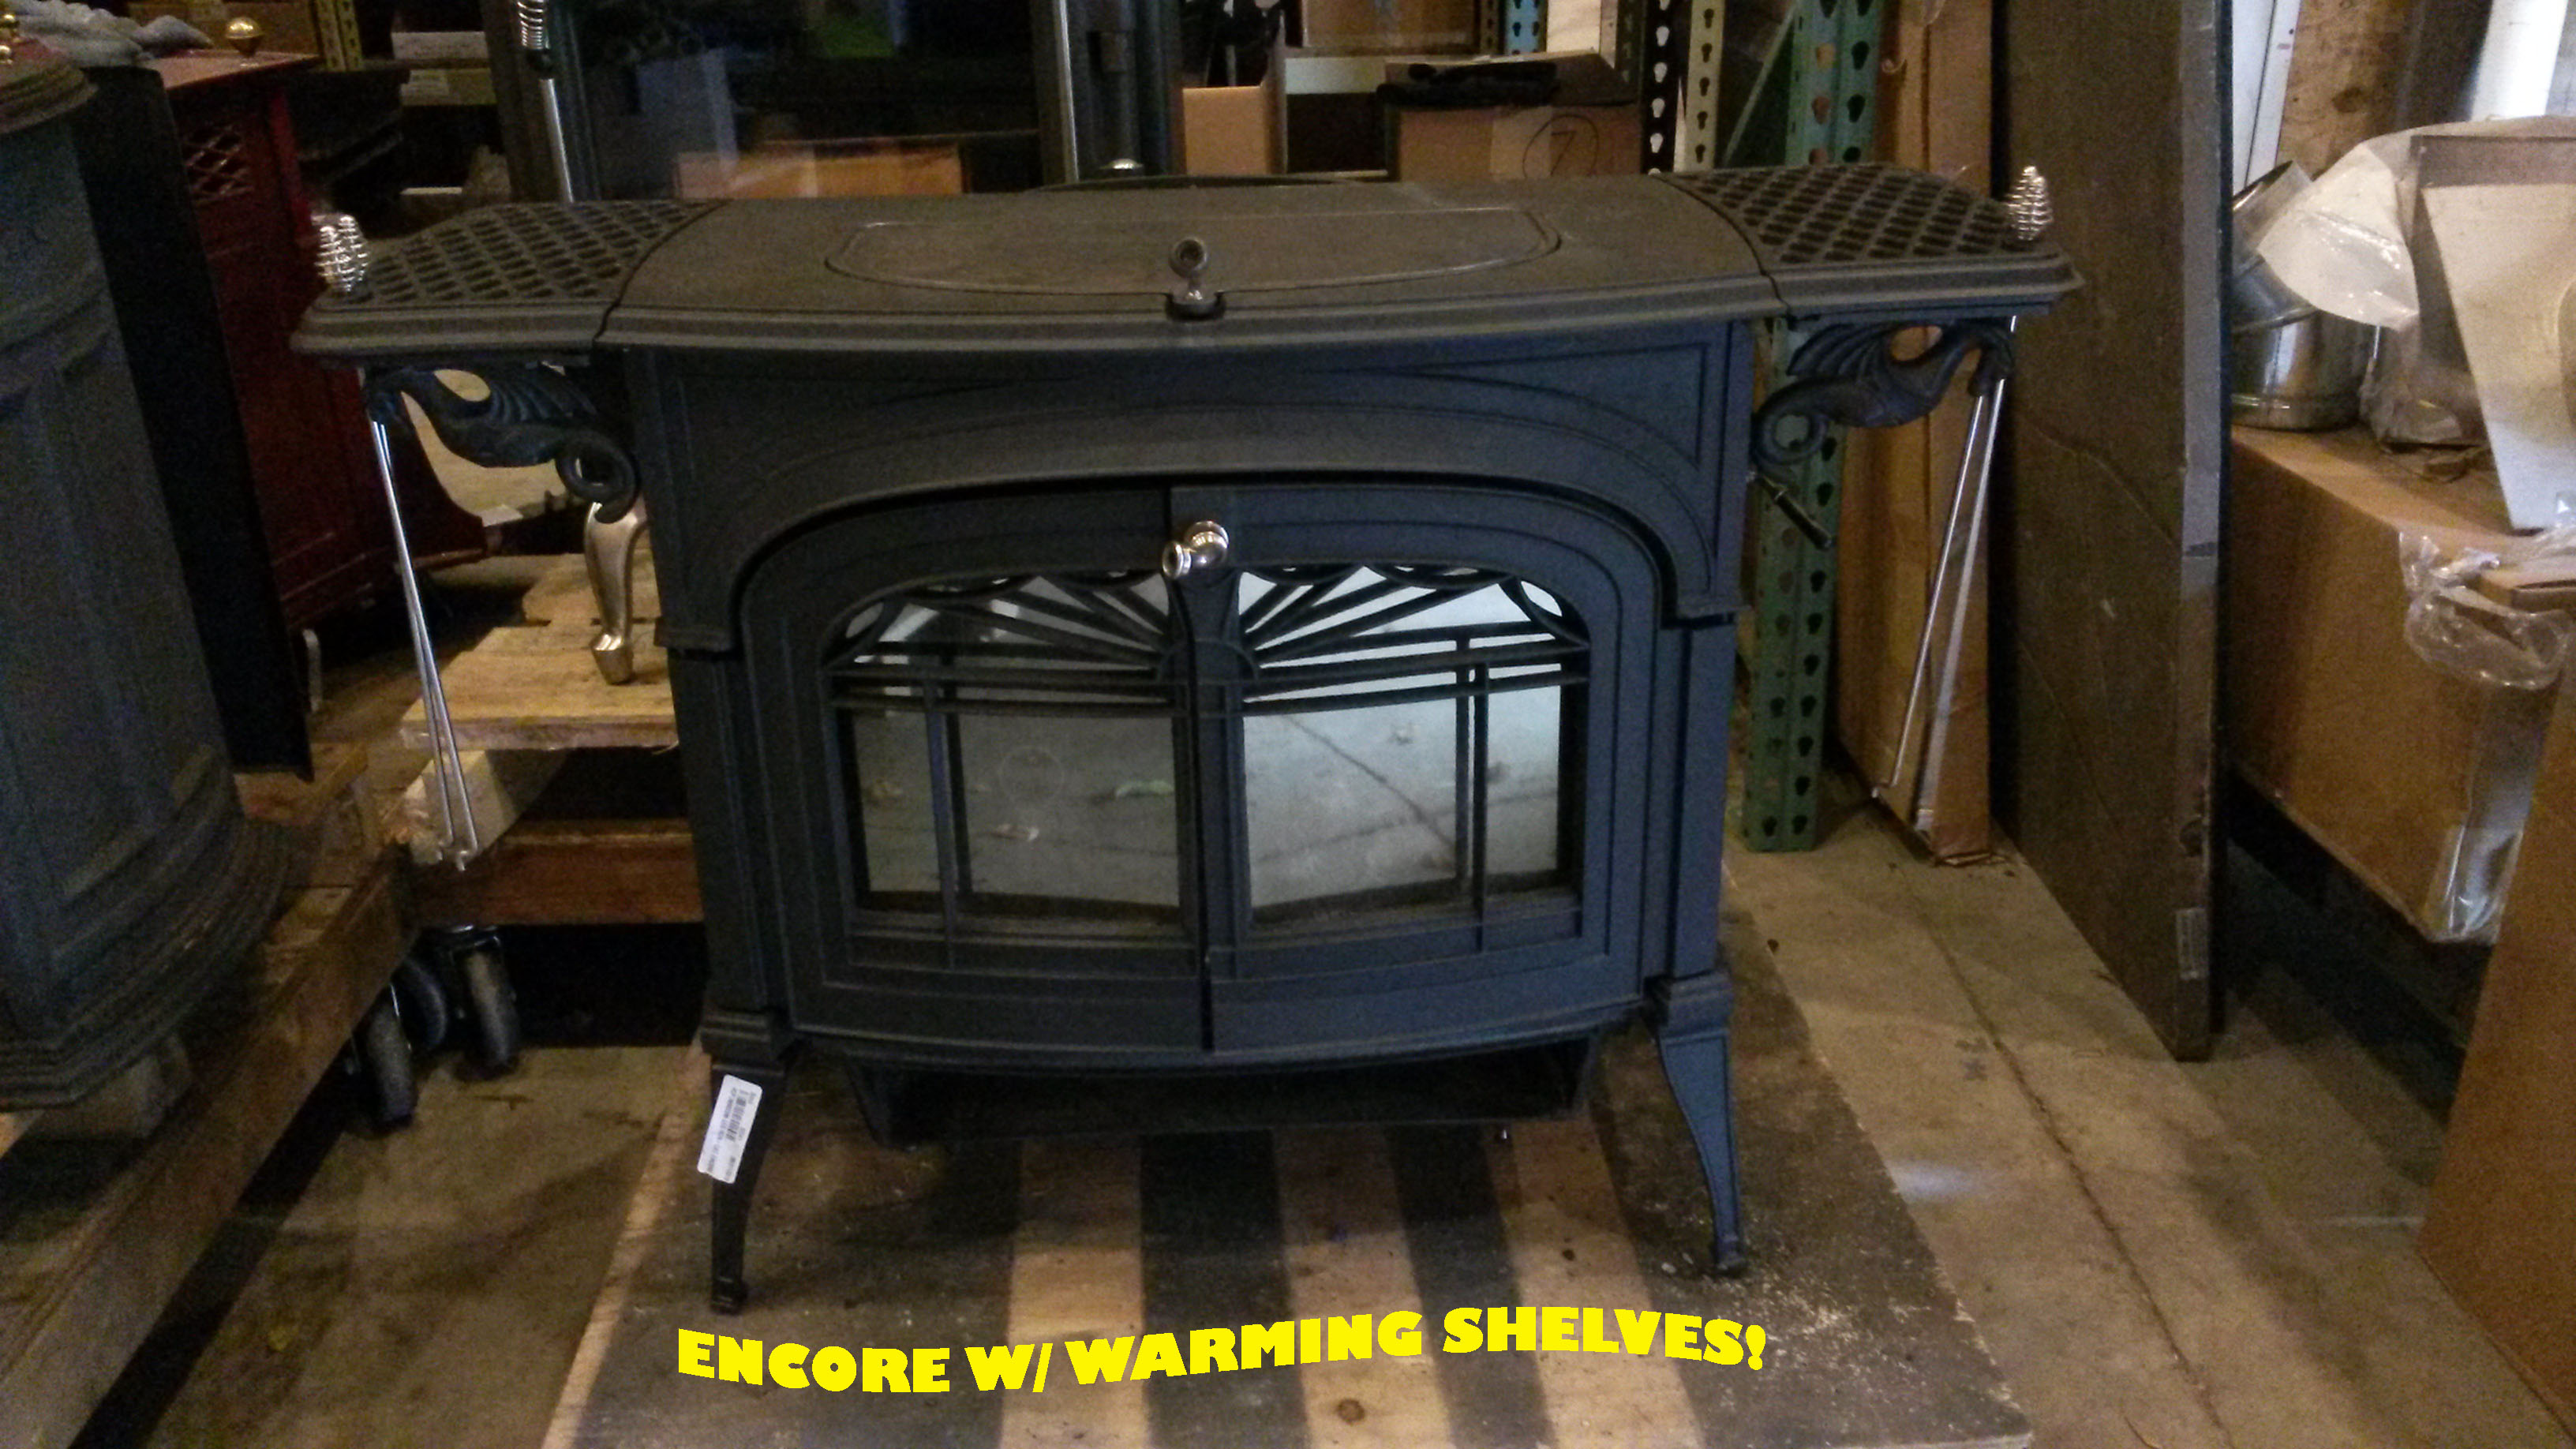 Vermont Castings Used Encore w/ Warming Shelves